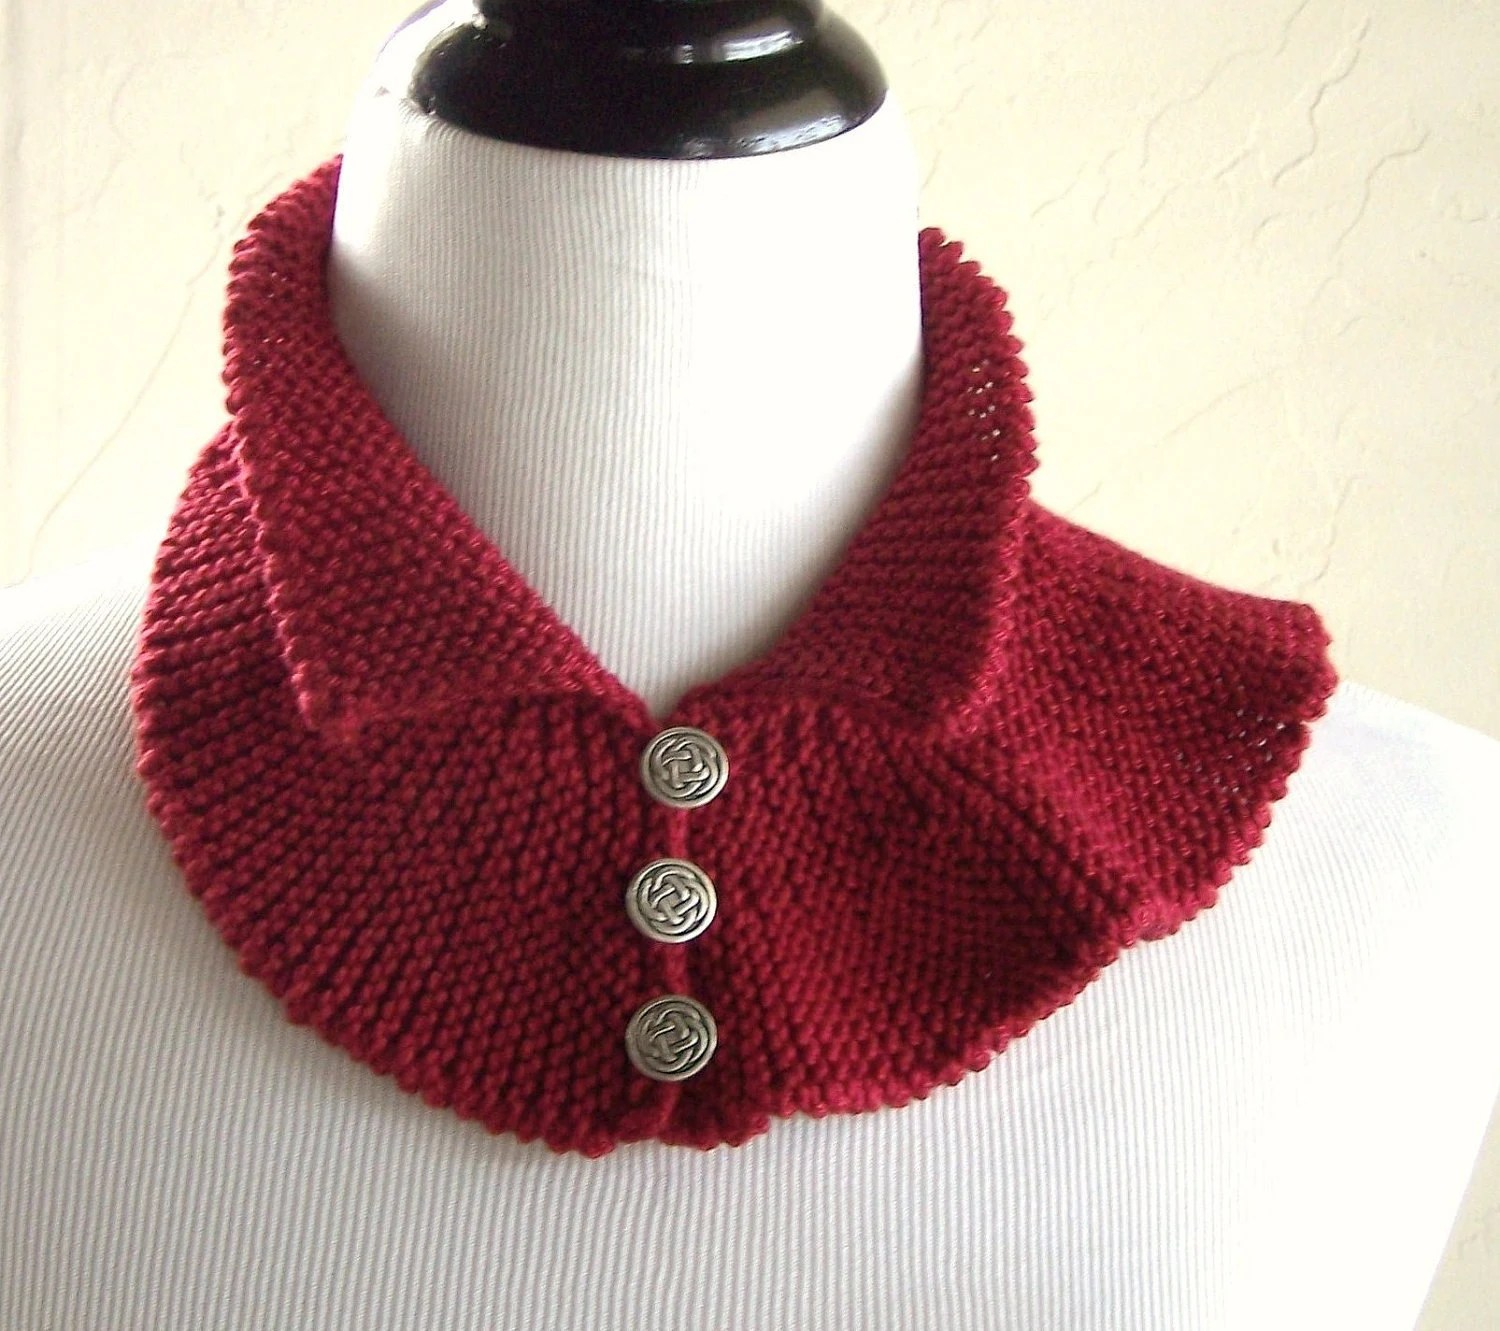 Two-Faced Collar in Ruby Red by Melanie Rice - pima cotton knit - mrchicknits